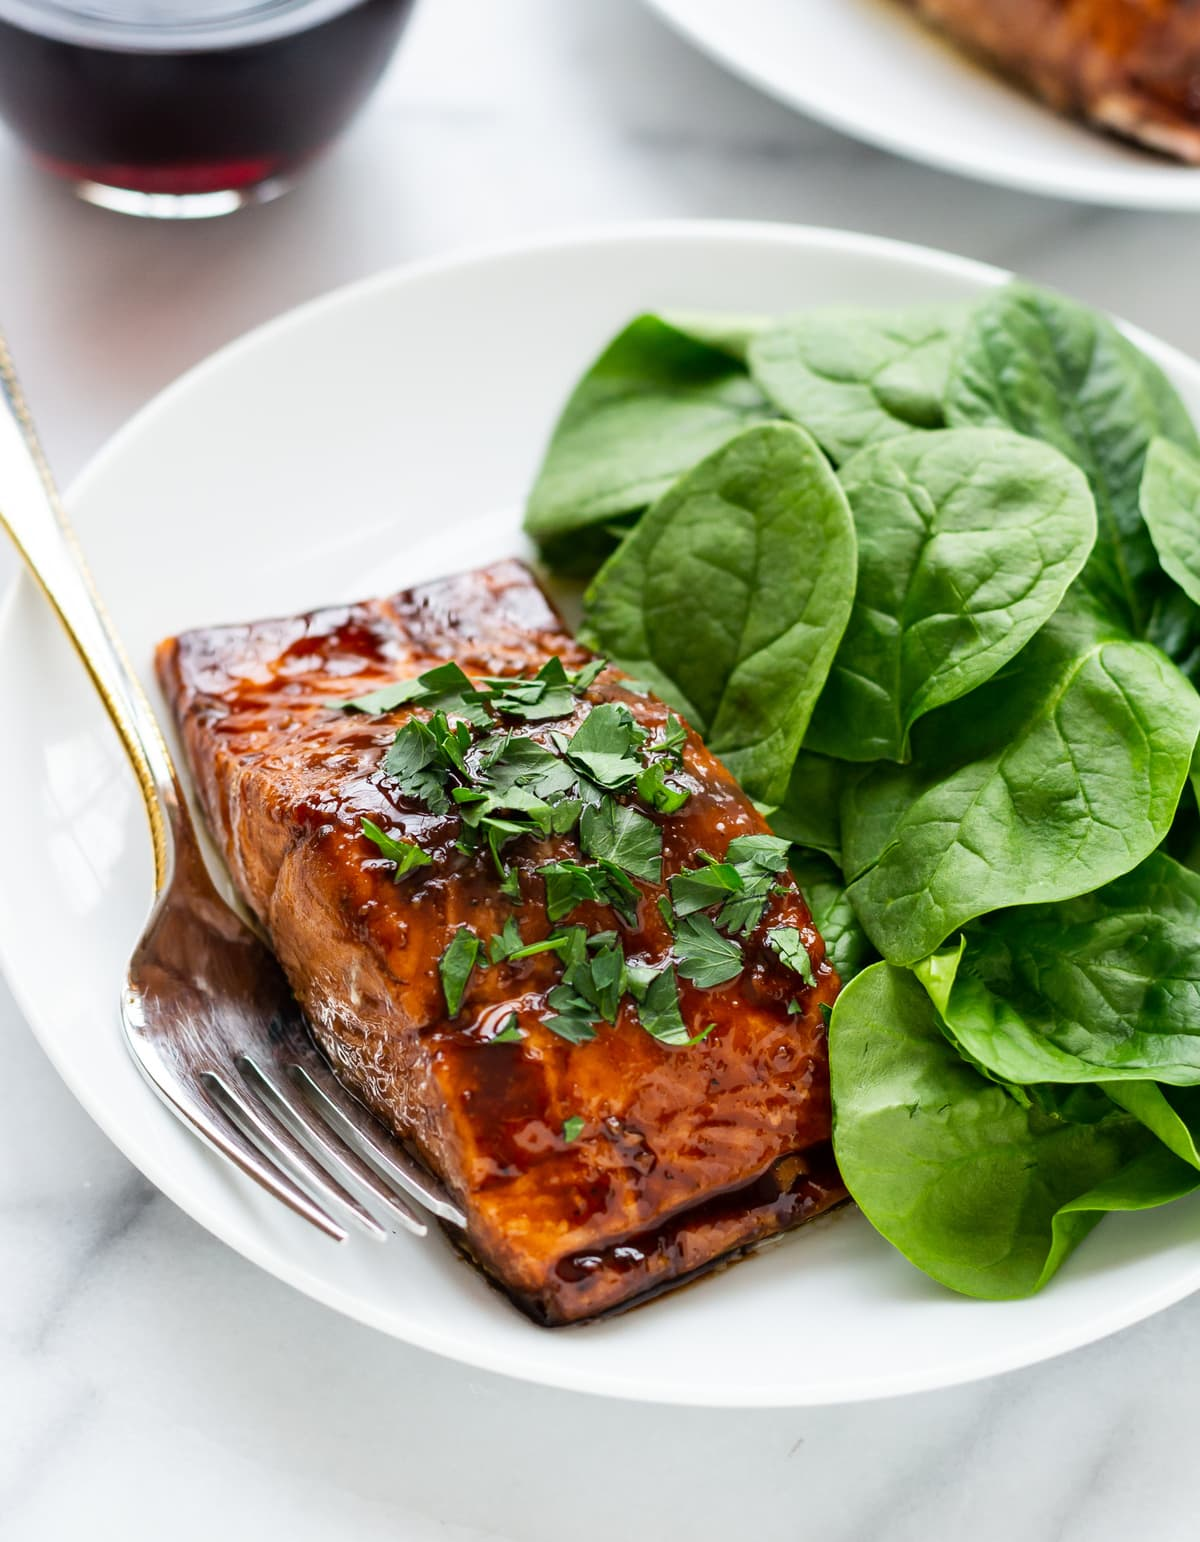 balsamic glazed salmon on a white dinner plate, next to fresh spinach leaves